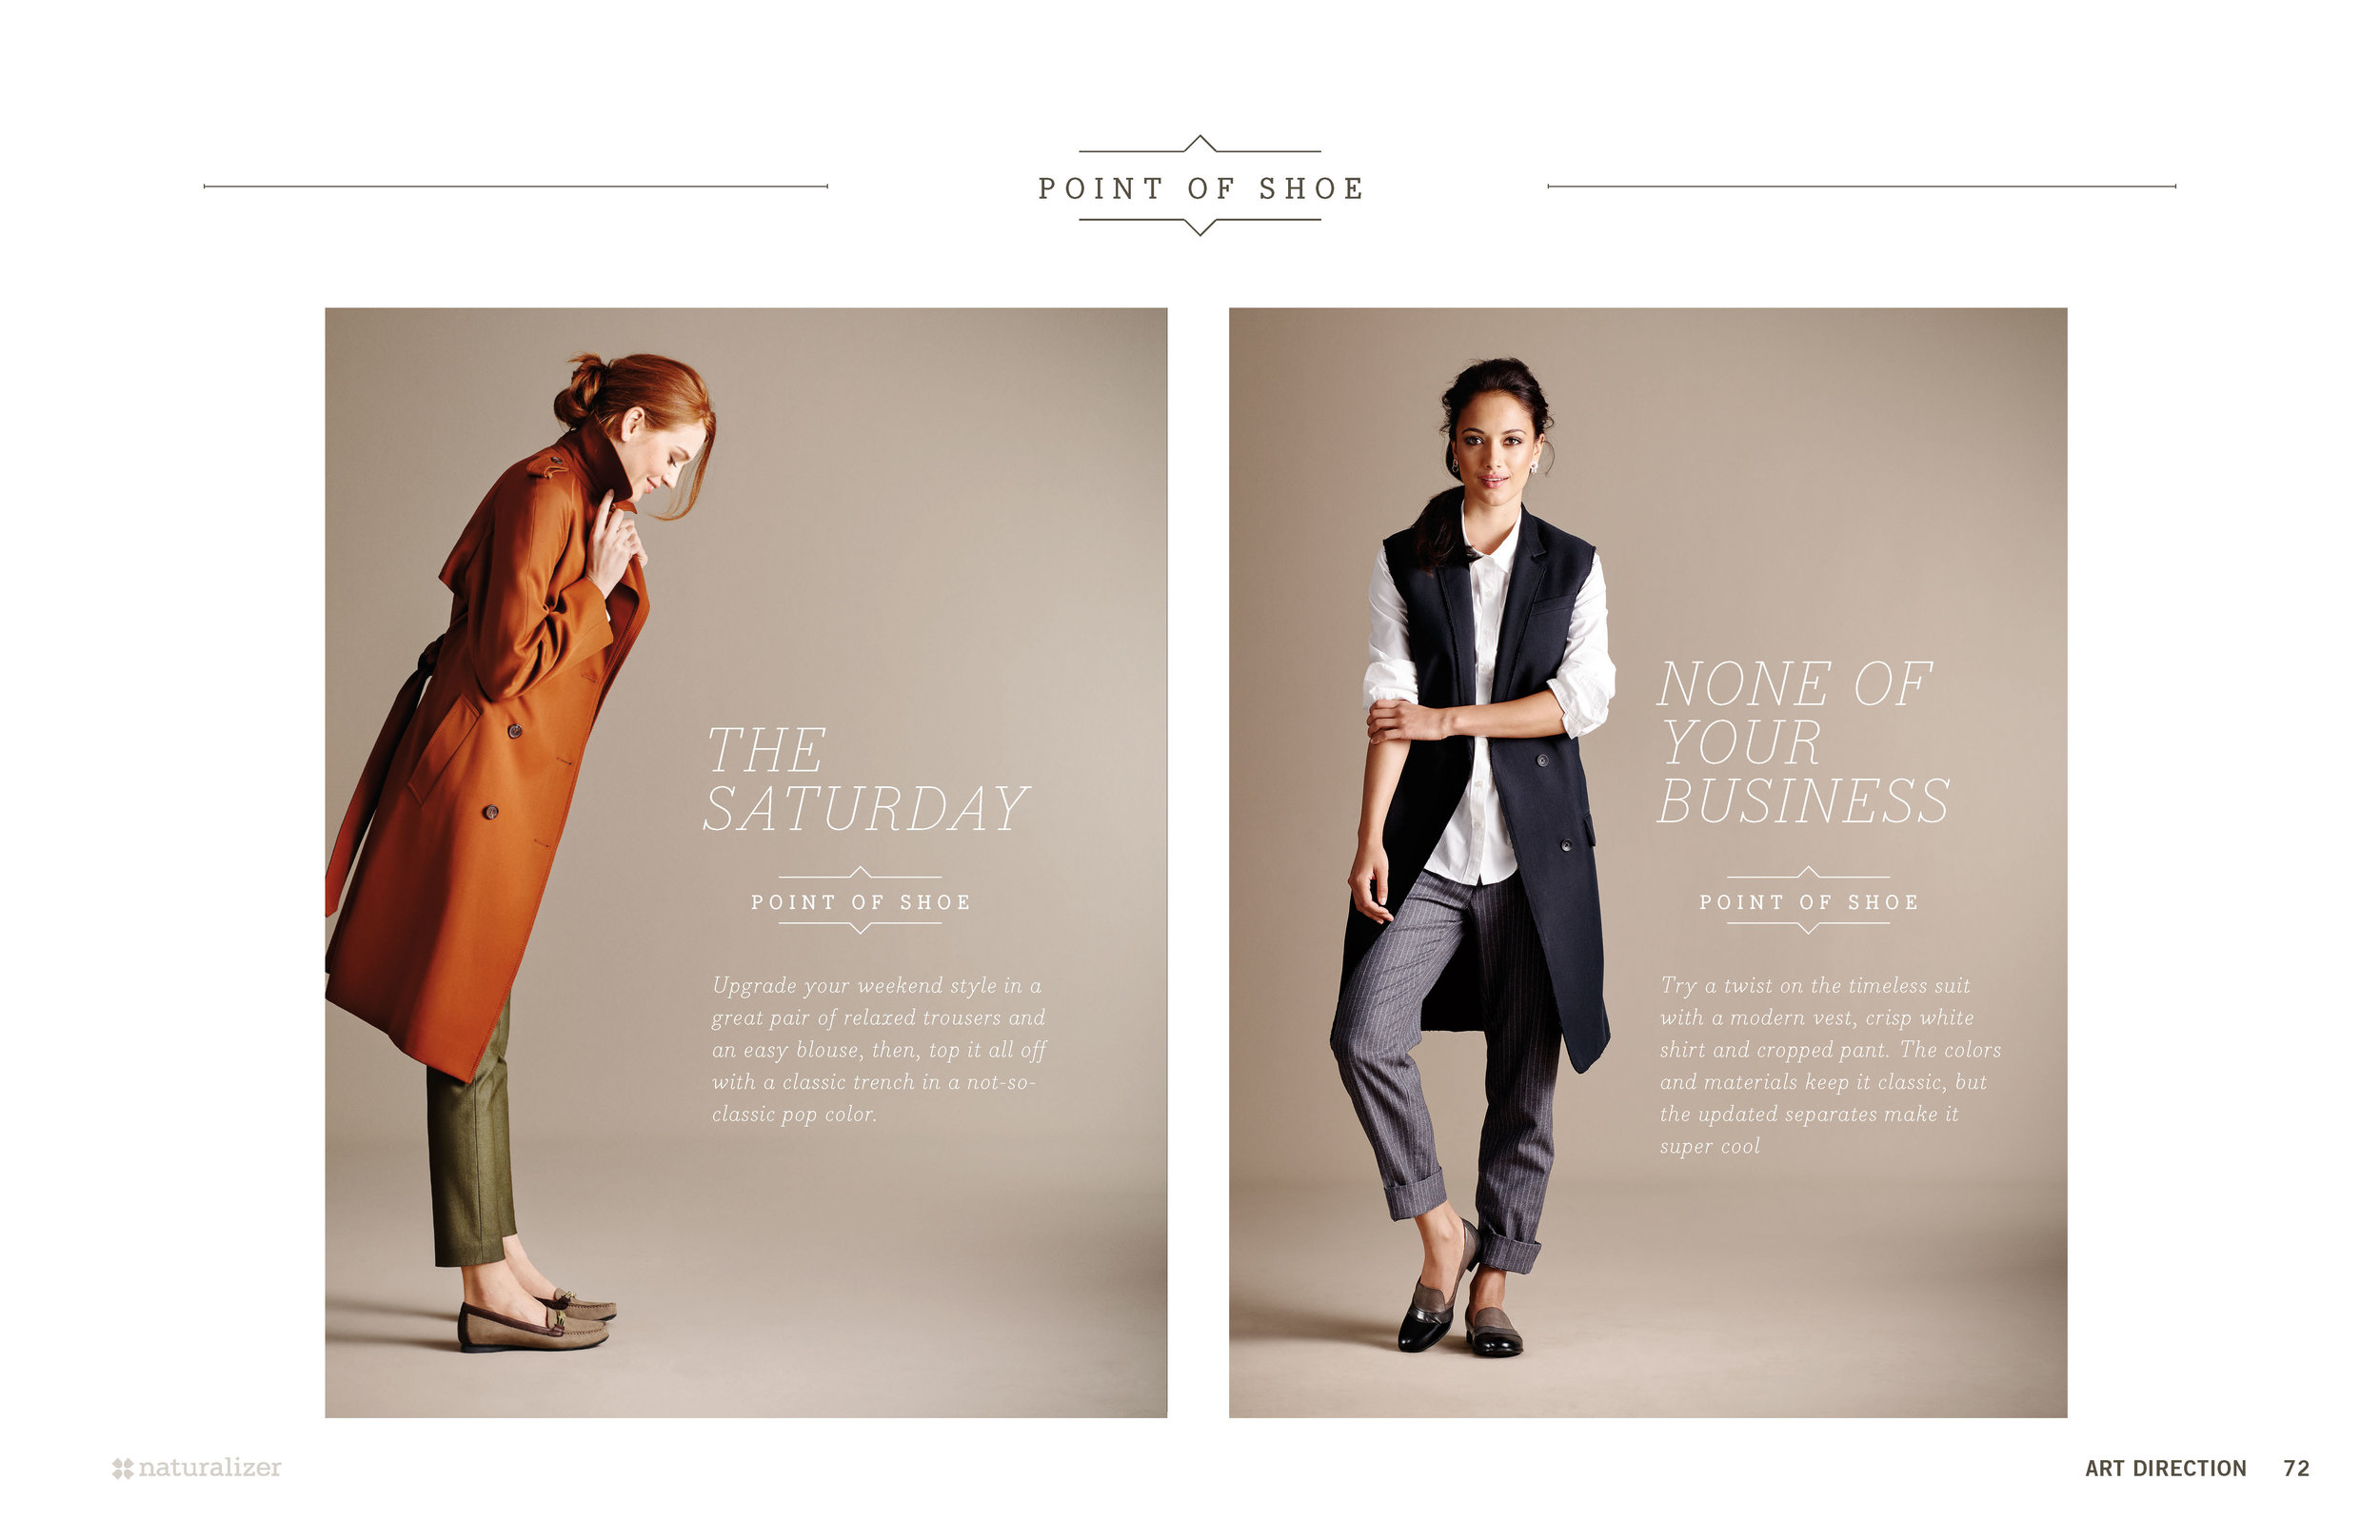 NATFW15 STYLE GUIDE CURRENT_Page_79.jpg